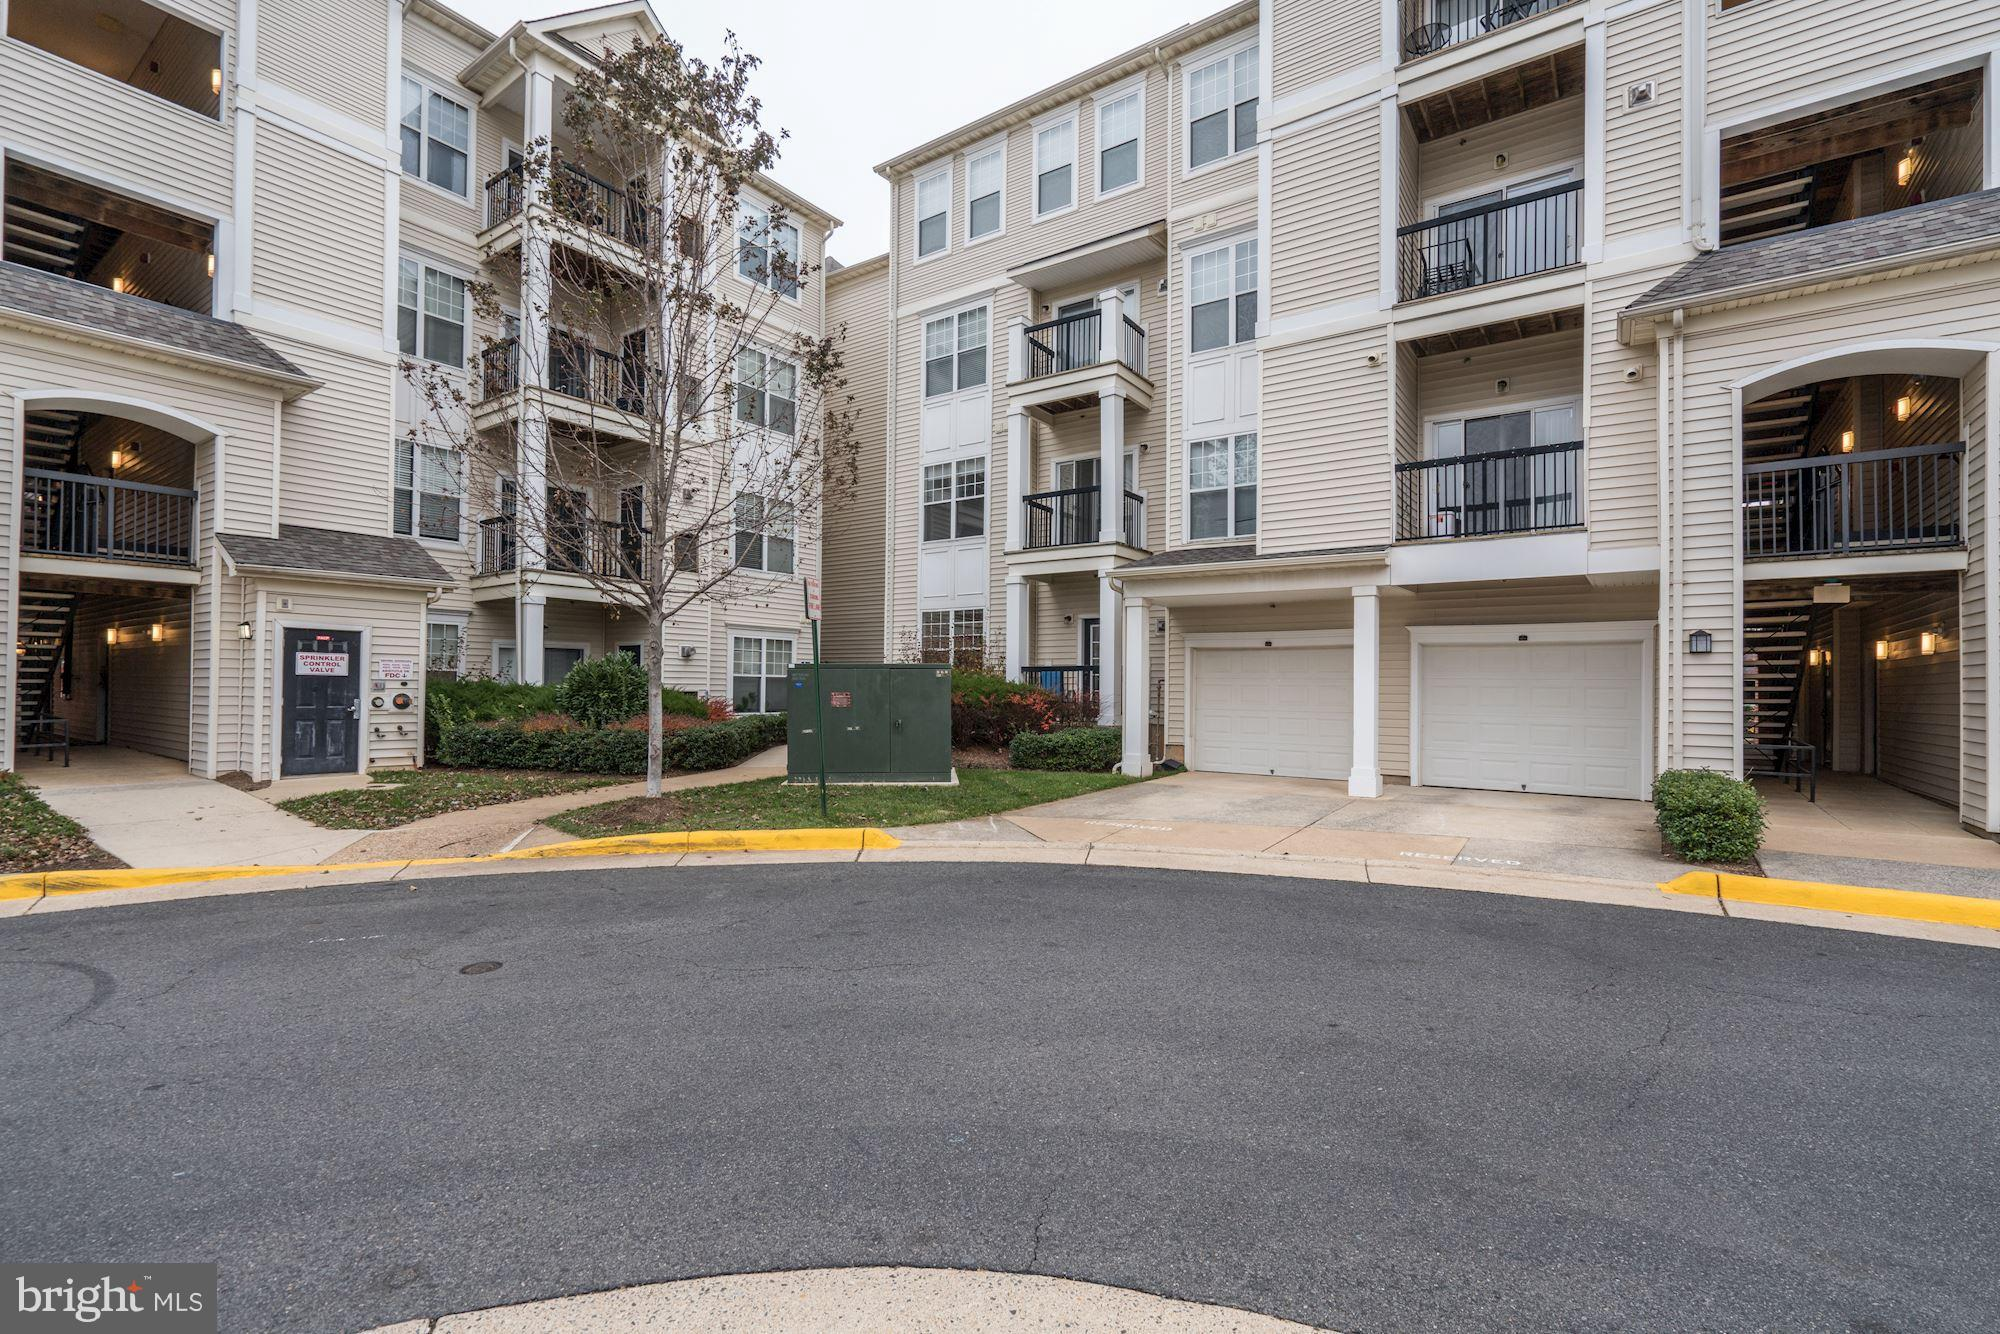 This condo home comes with 2 bedrooms, 2 full-bathrooms, 2 balconies, newly installed washer and dryer, and 2 parking spaces (1-car garage and garage driveway). My clients loved this home because it is located less than 0.4 mi away from Route 50 and 0.7 mi away from I-66, with Wegmans being less than 1.4 mi away and Fair Oaks Mall being roughly 1.9 mi away from the home. They also appreciated the overall continuity they felt within the community as a whole.   Community amenities include  fitness center membership, access to game room and clubhouse, a community swimming pool. picnic areas, business center, security gate, and playground access throughout the neighborhood. Investors - This is a garden style condo with an average cap rate of 6.954%. Cap rate is based on acquisition cost at list price and average rent of 2/2 condo homes in the community  from 06/01/2018 to 12/01/2018. Average rent over that 180 day period was $1,883.50.  Asset should be ideal for REITs.